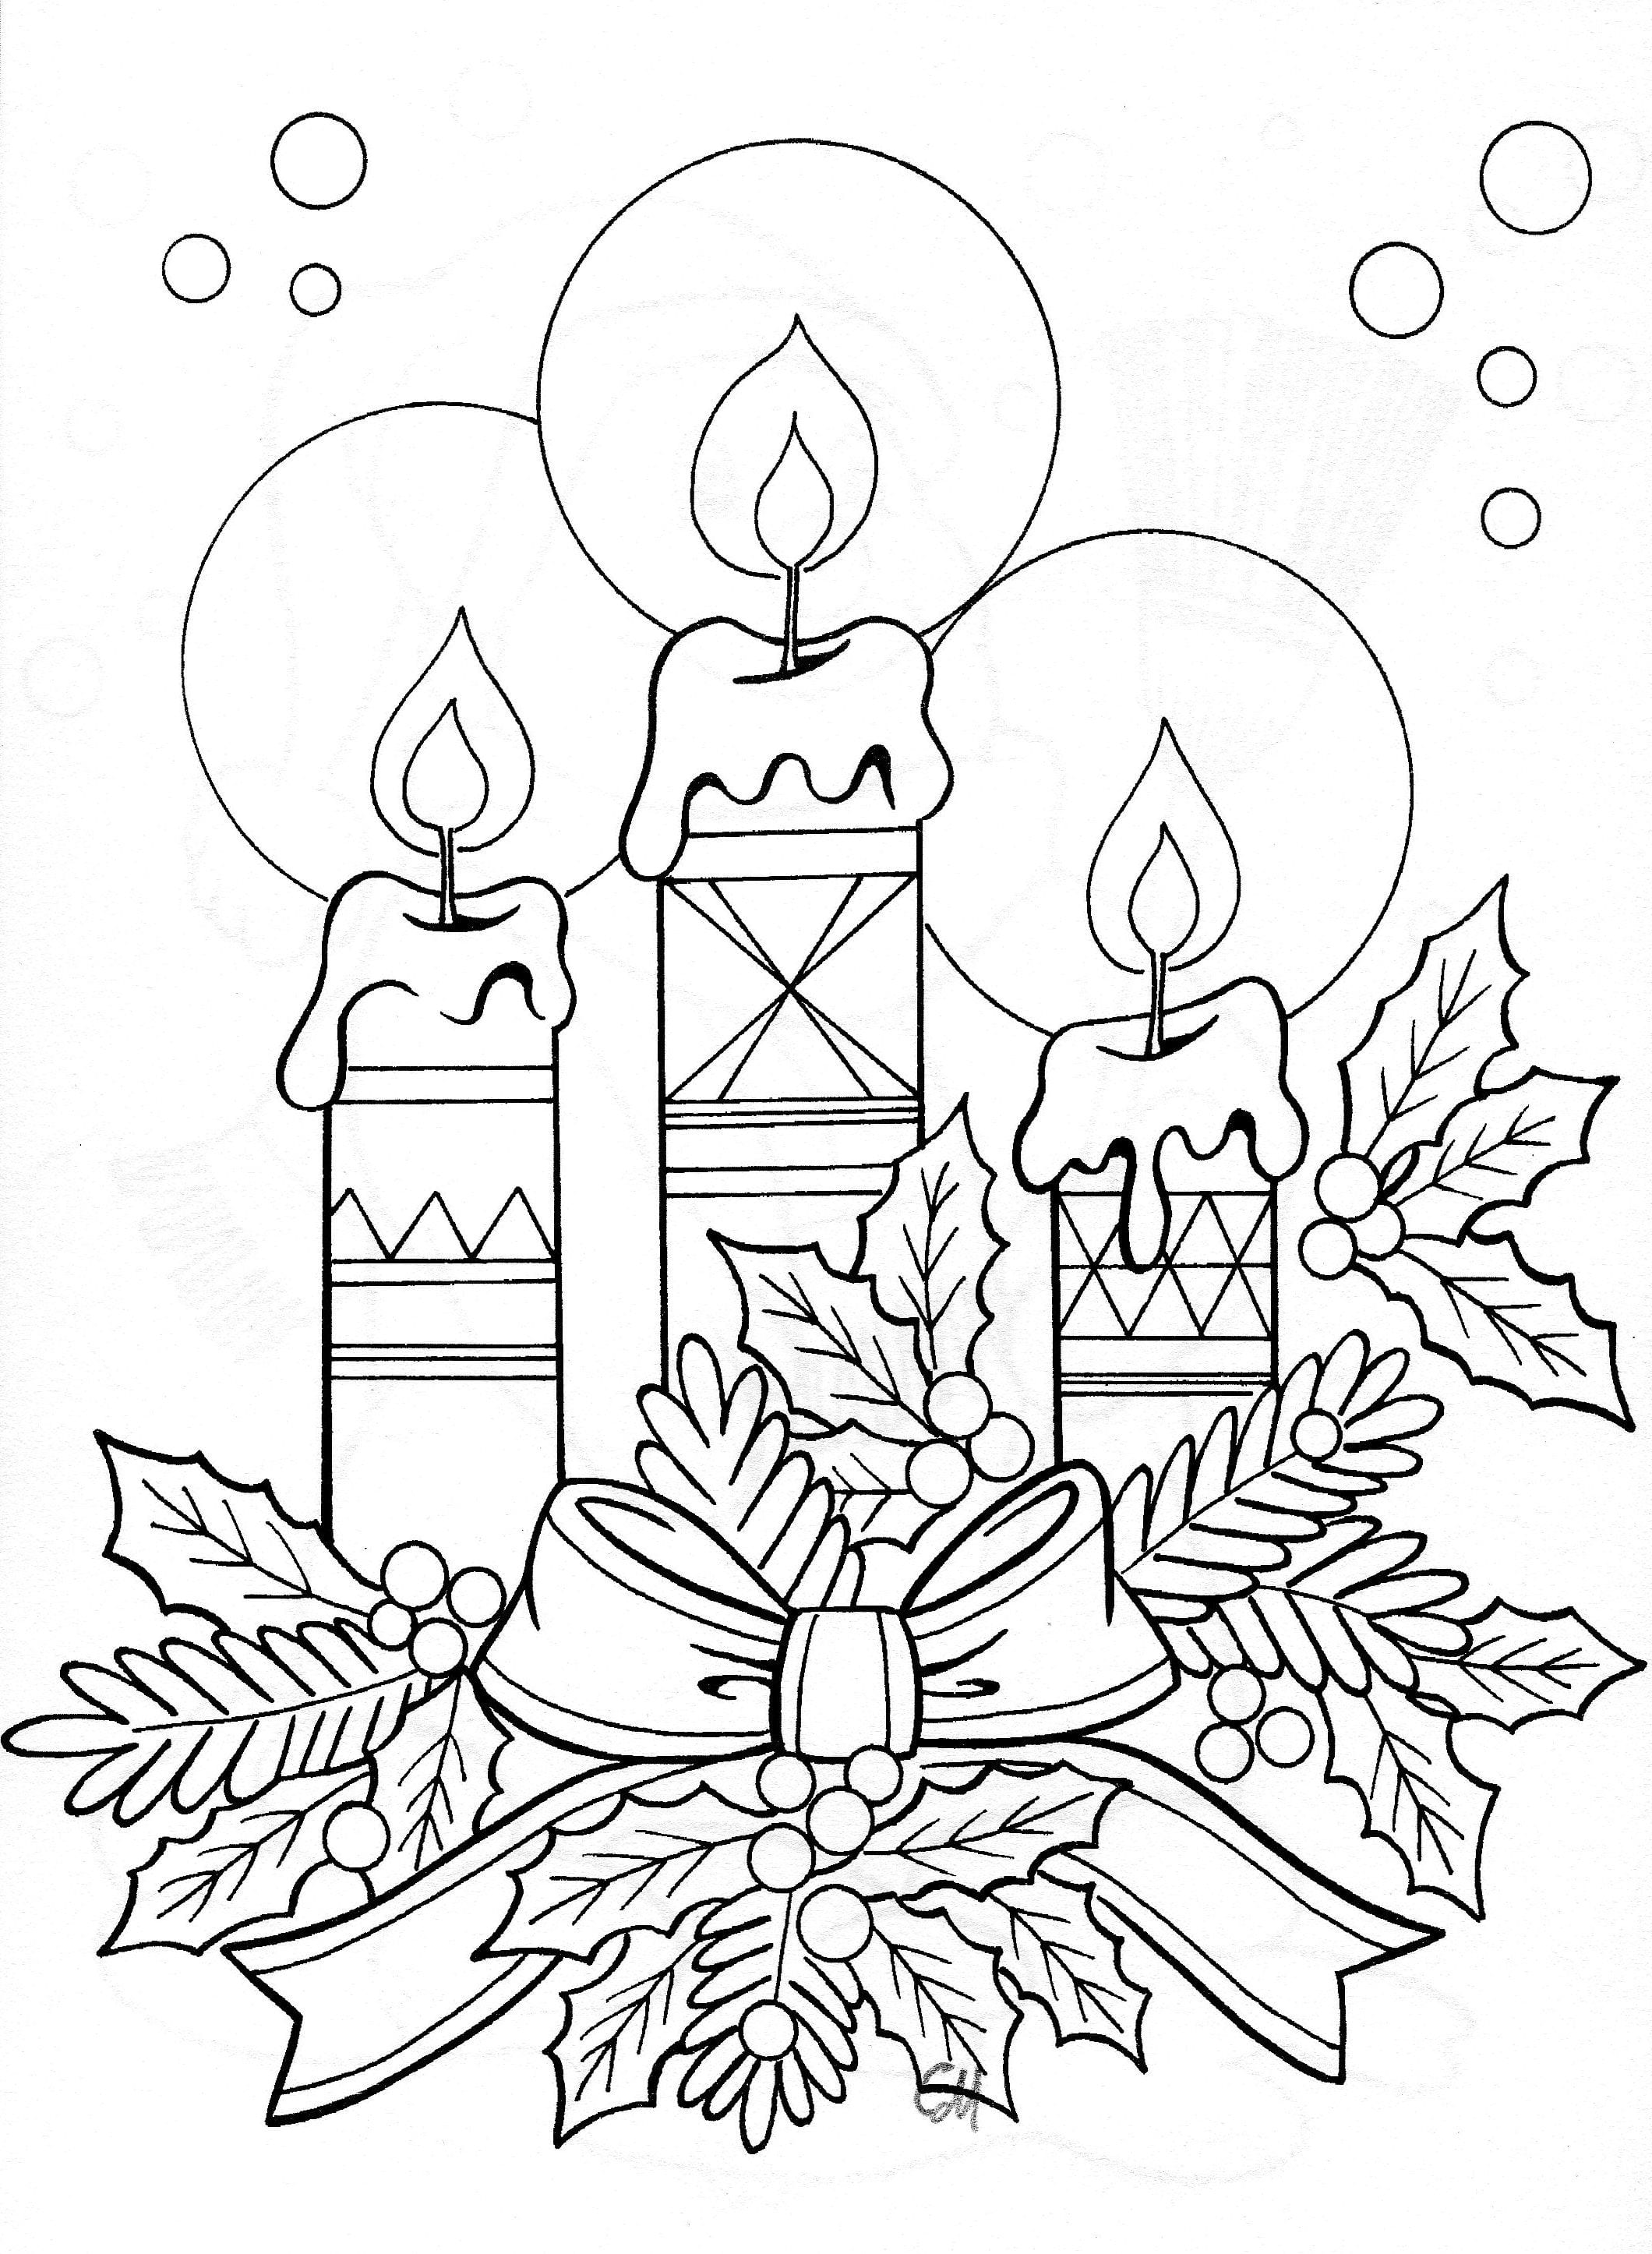 present coloring pages top 10 free printable christmas ornament coloring pages online pages coloring present